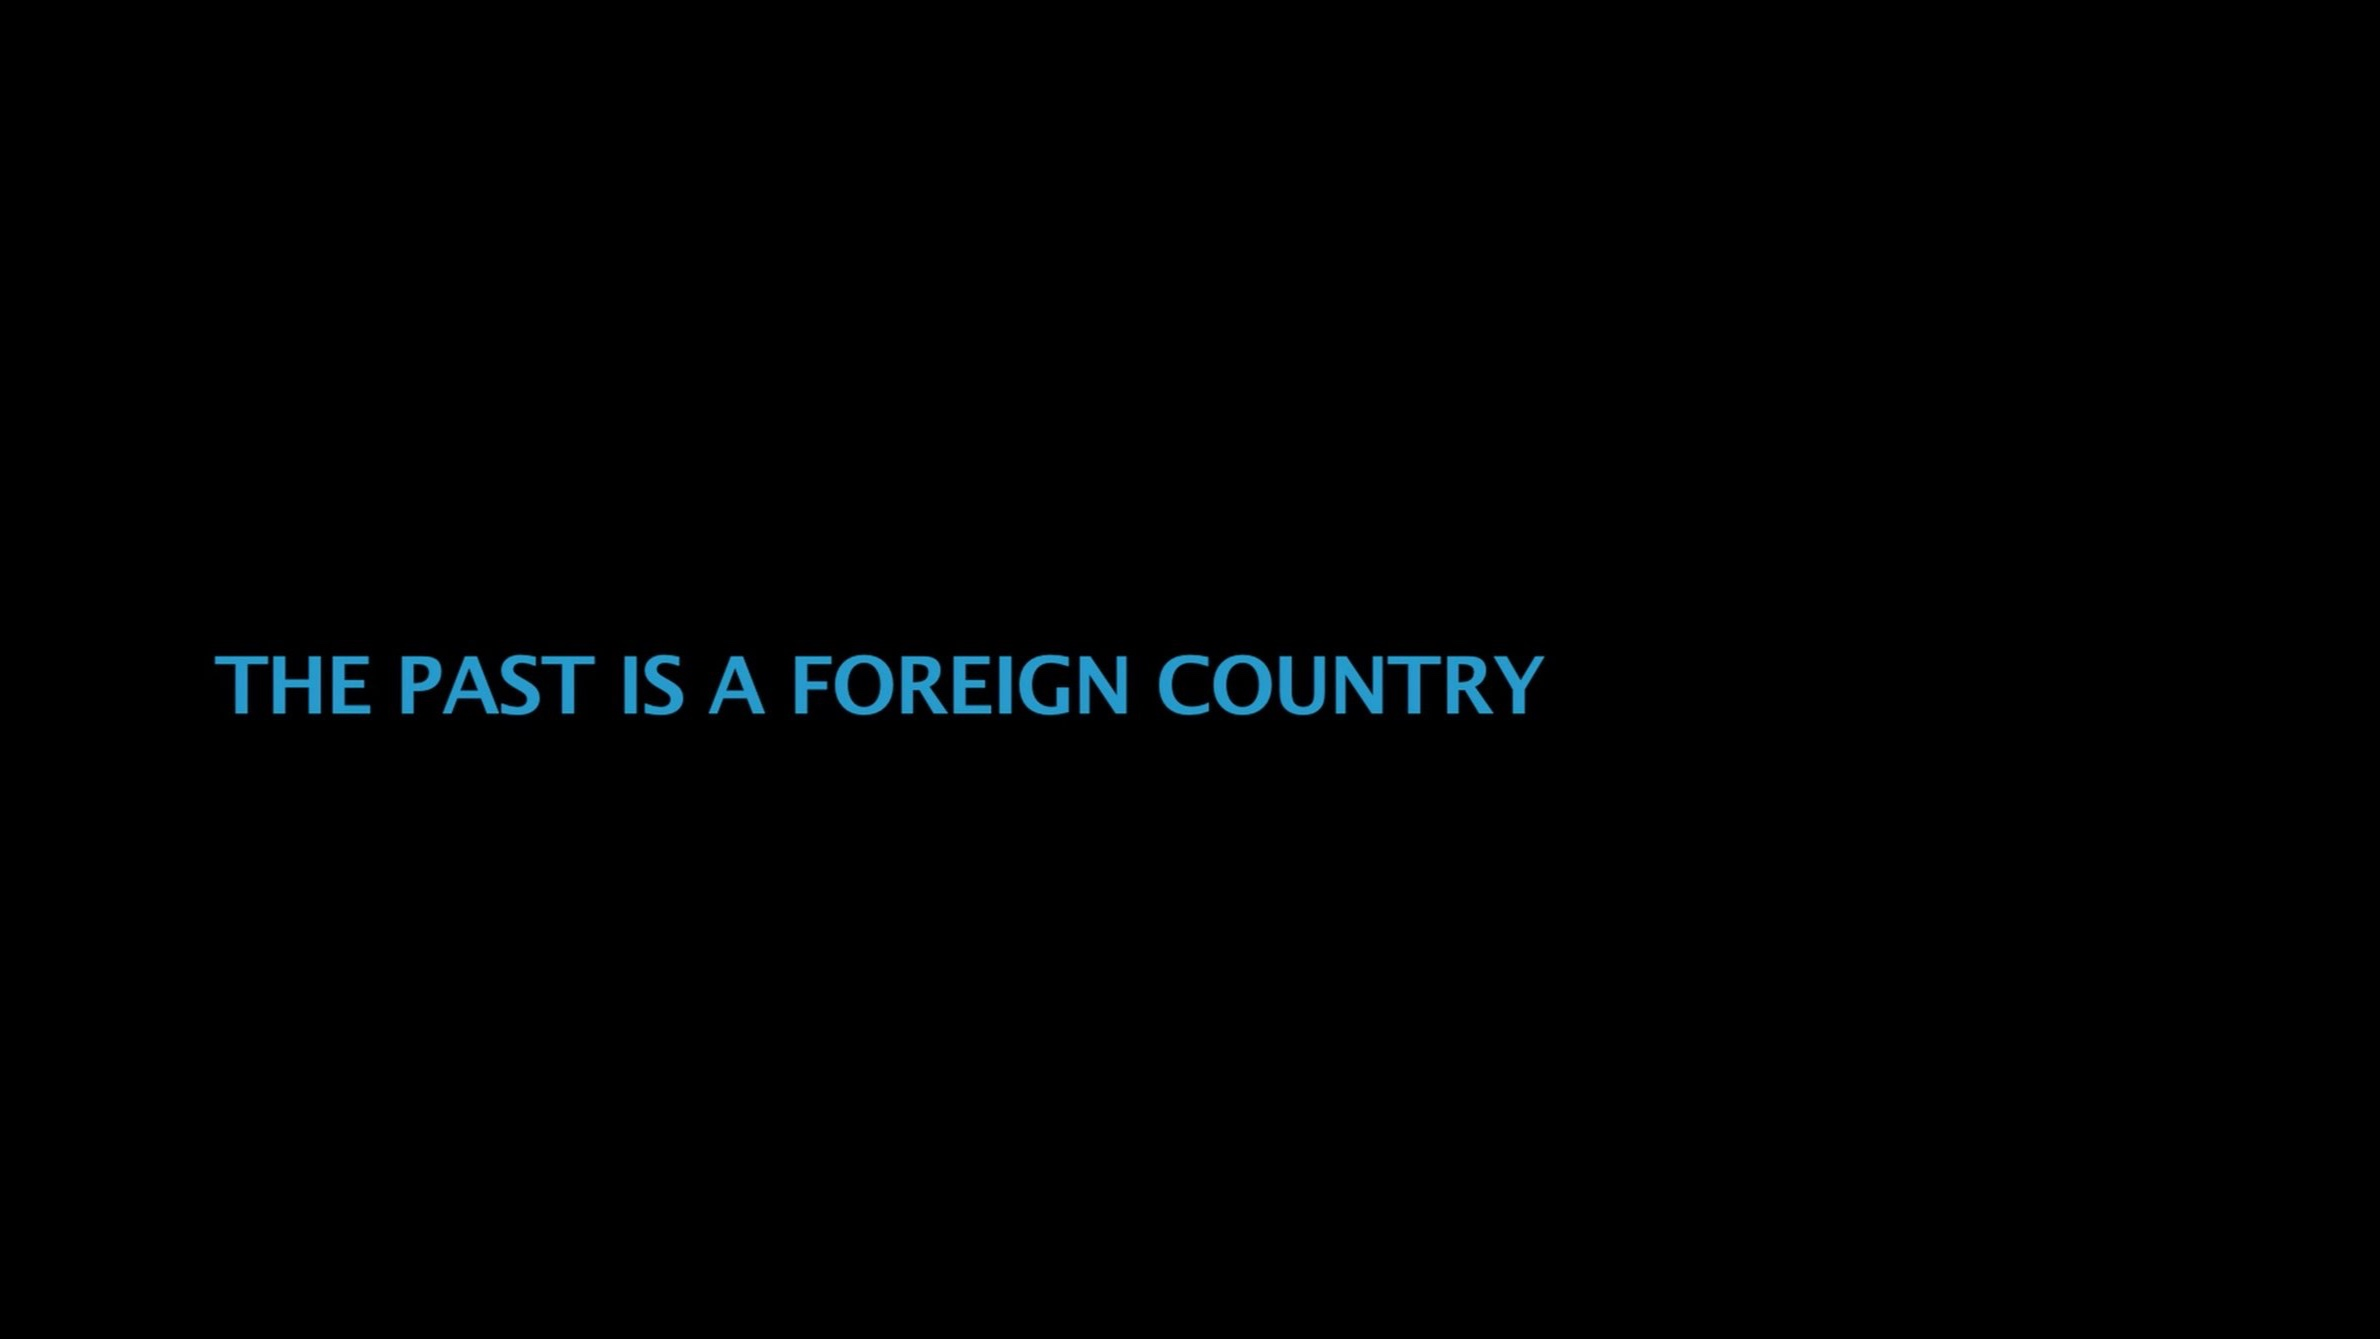 The past is a foreign country - EXPERIMENTAL SHORT FILM